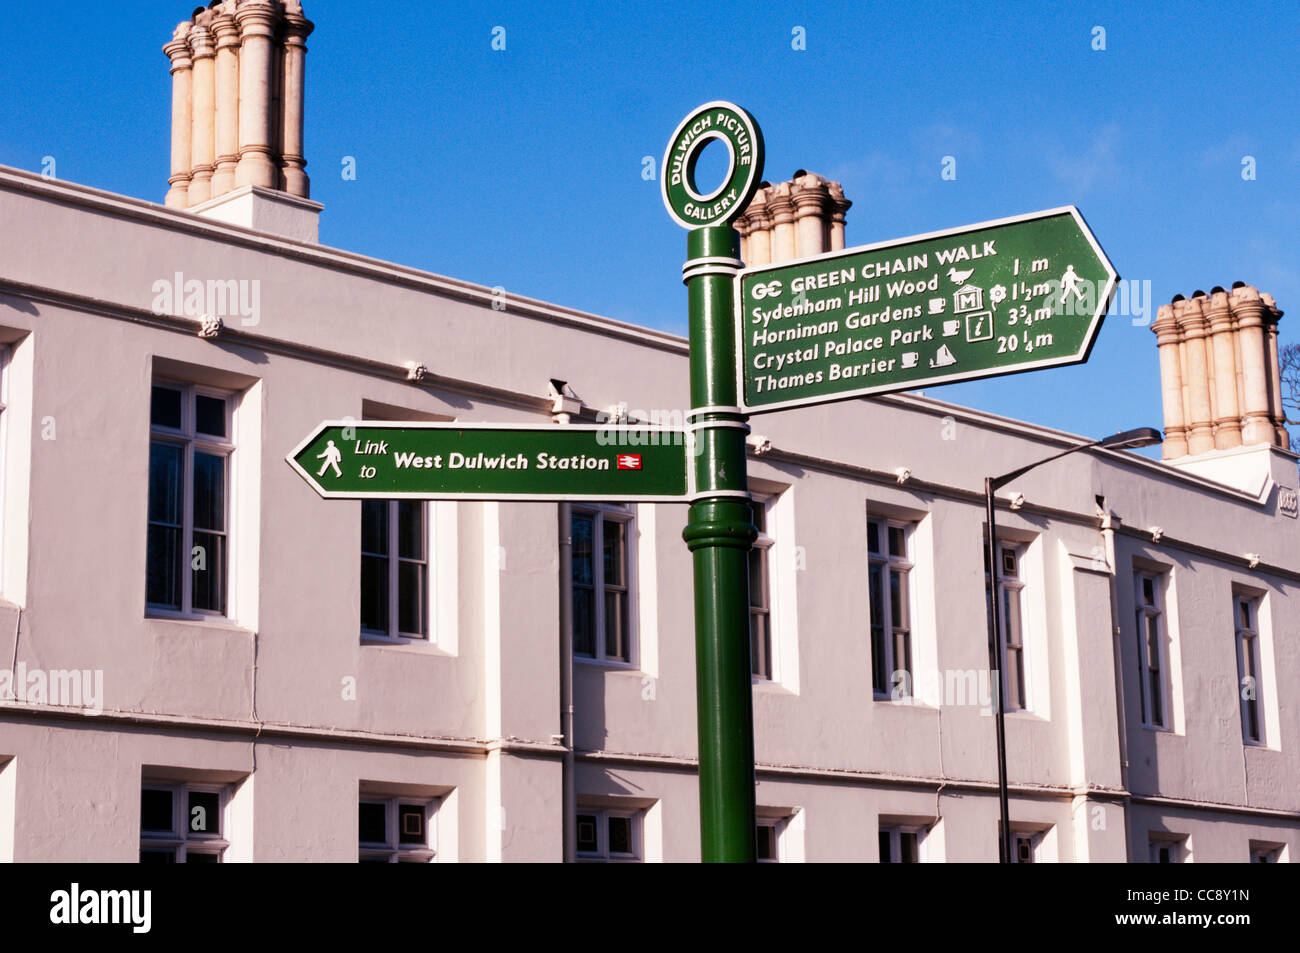 A sign for the Green Chain Walk in Dulwich Village, South London - Stock Image